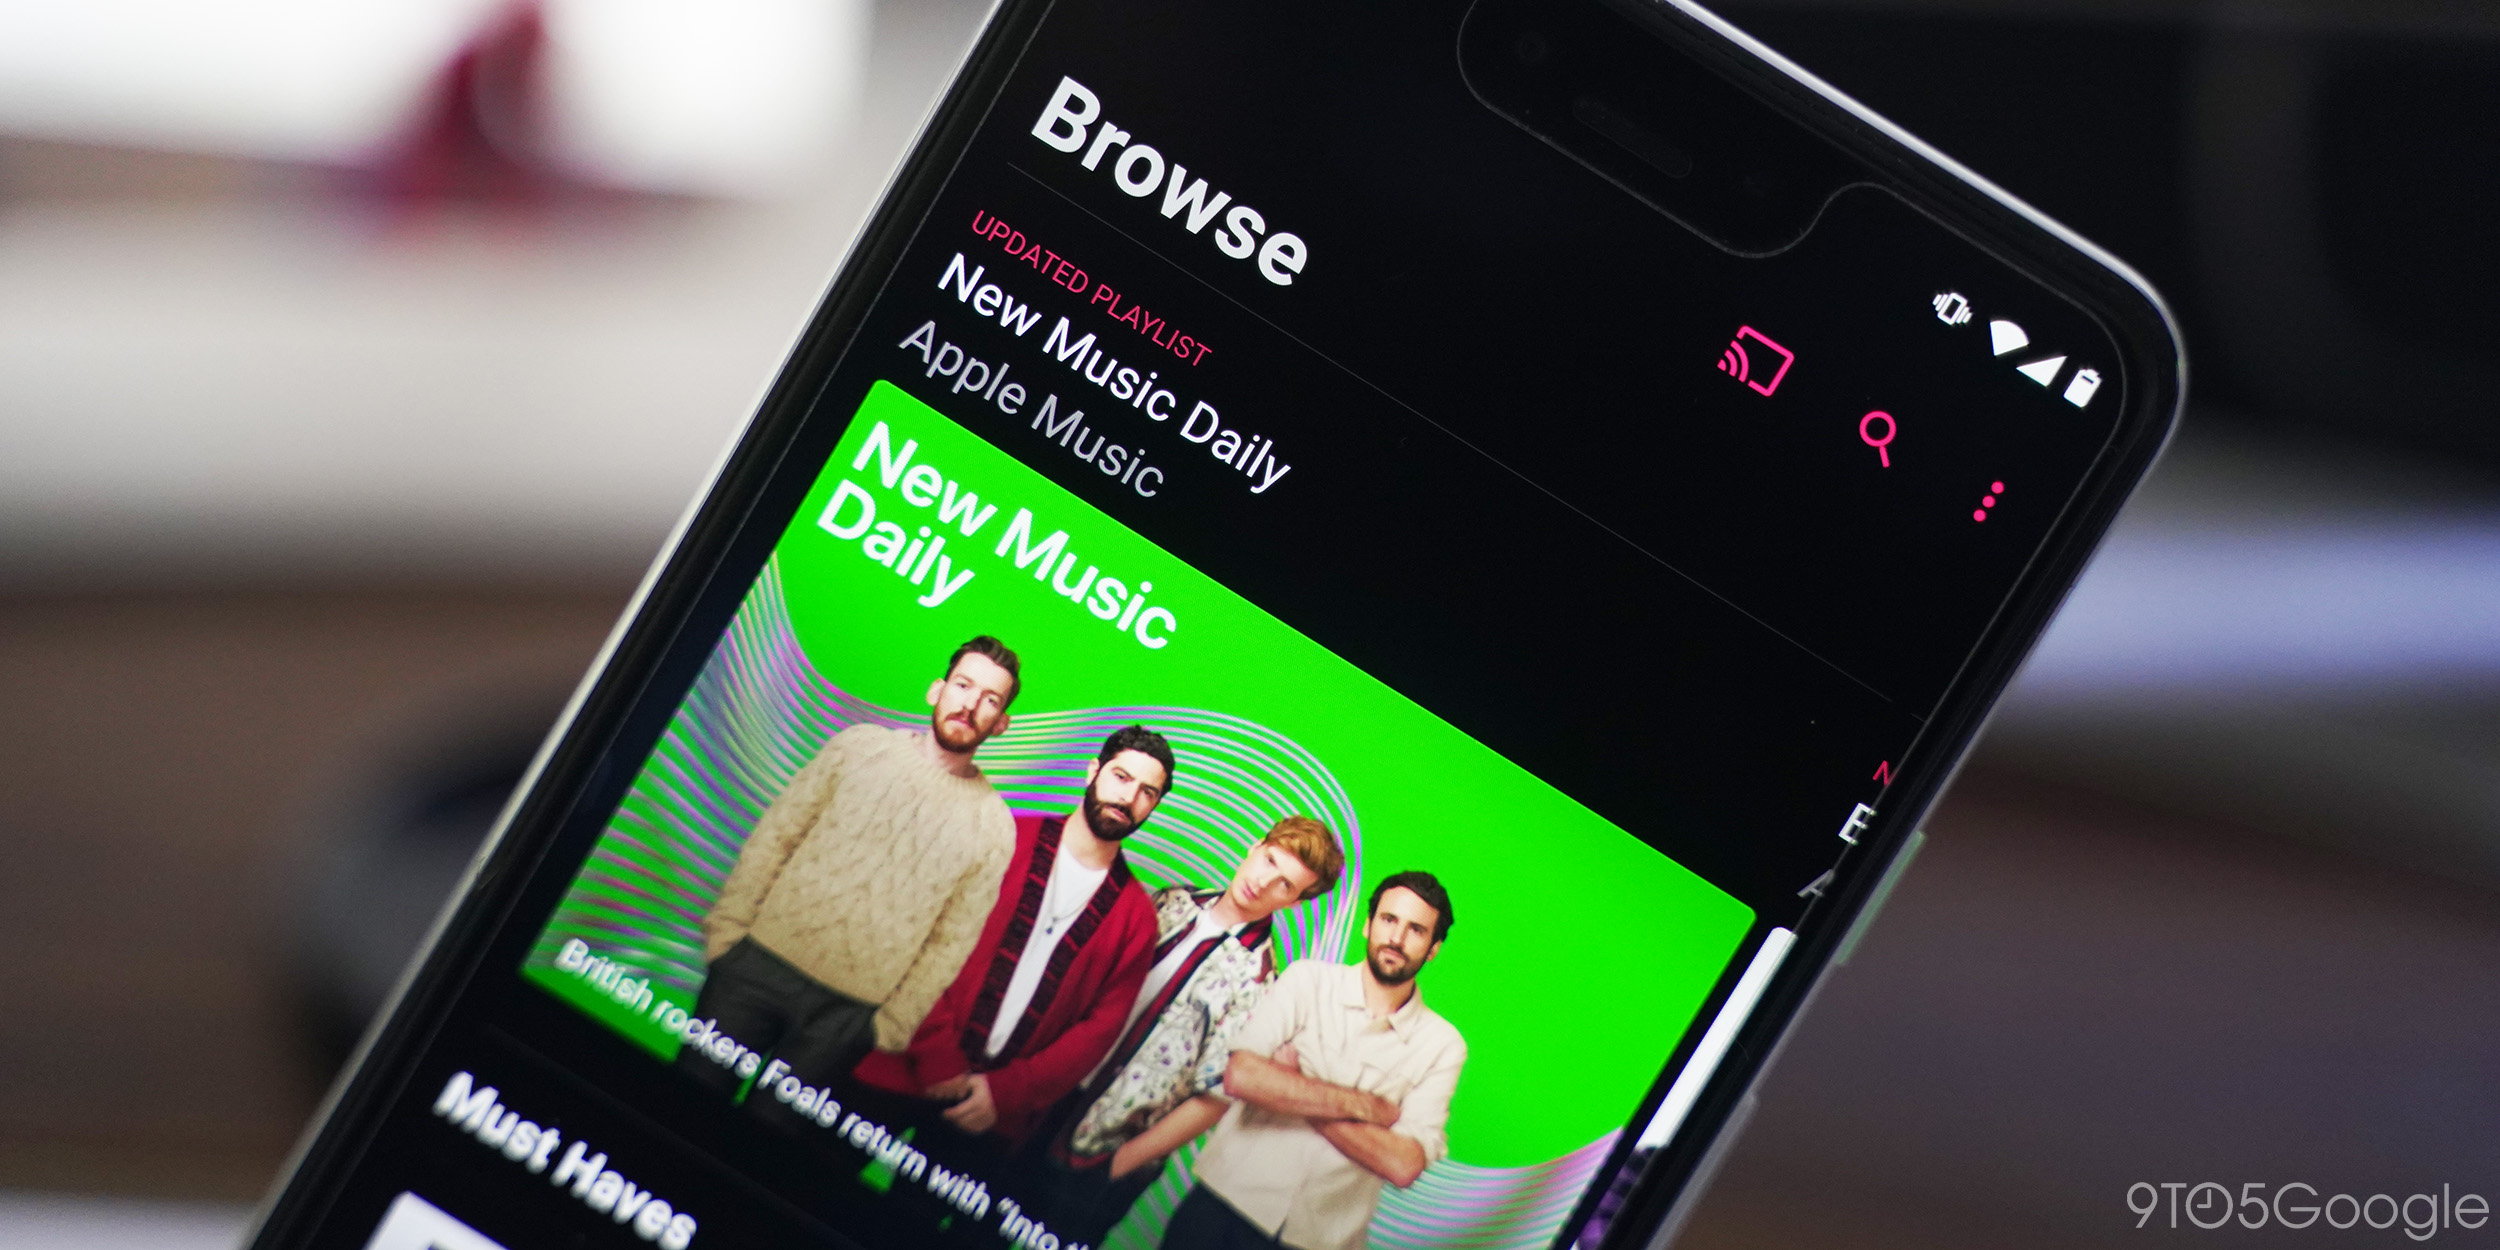 Apple Music 3.4 for Android brings iOS 14 themed redesign, autoplay [Gallery]